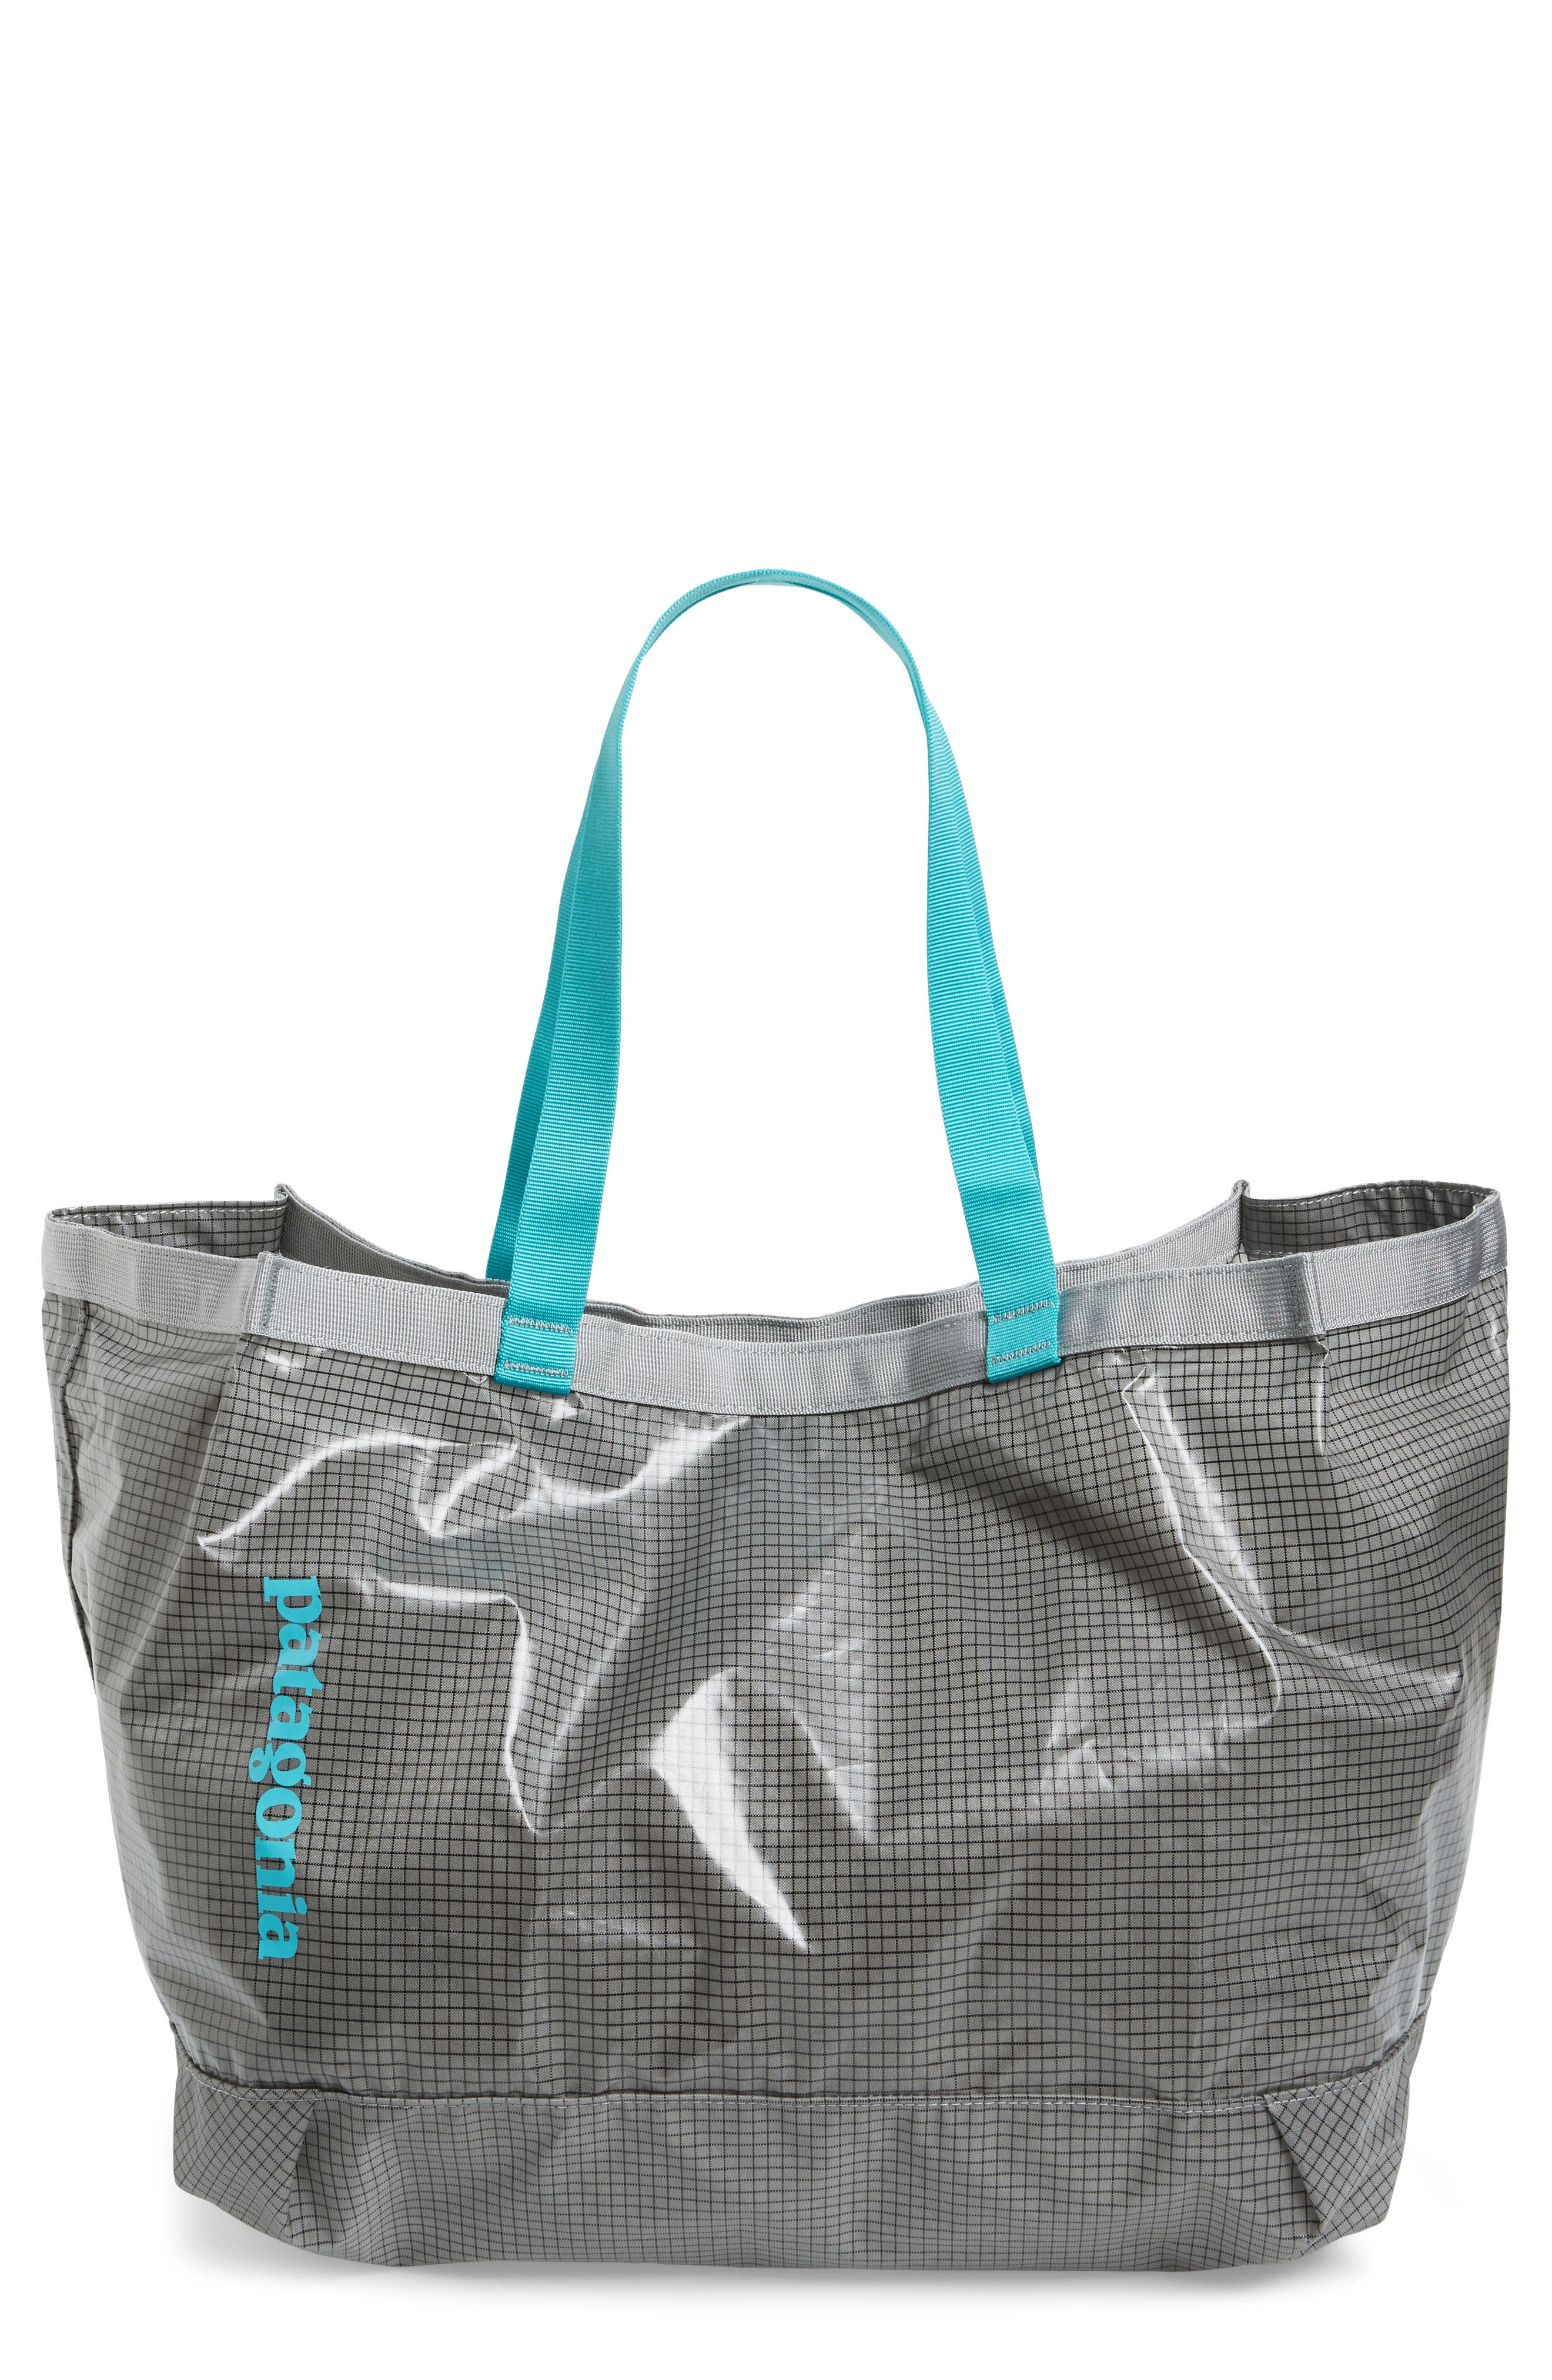 Lightweight Black Hole Gear Tote Bag,                             Main thumbnail 1, color,                             020